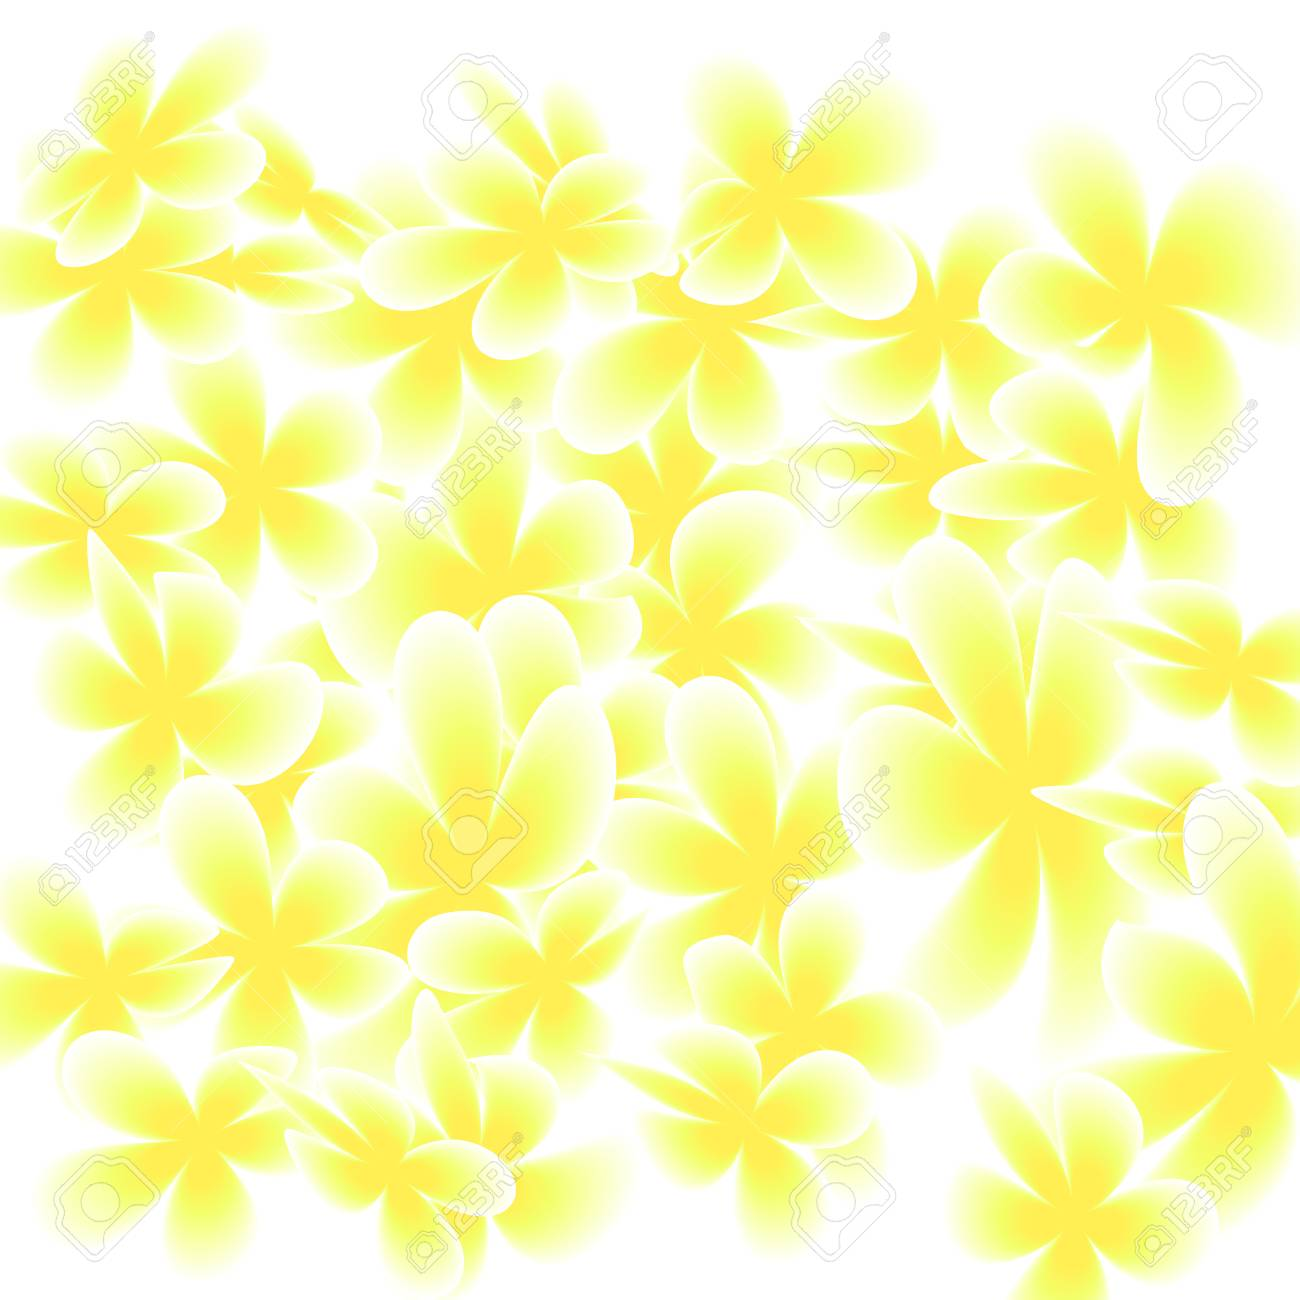 Gentle Yellow Flowers Confetti Background Spring Magnolia Pattern